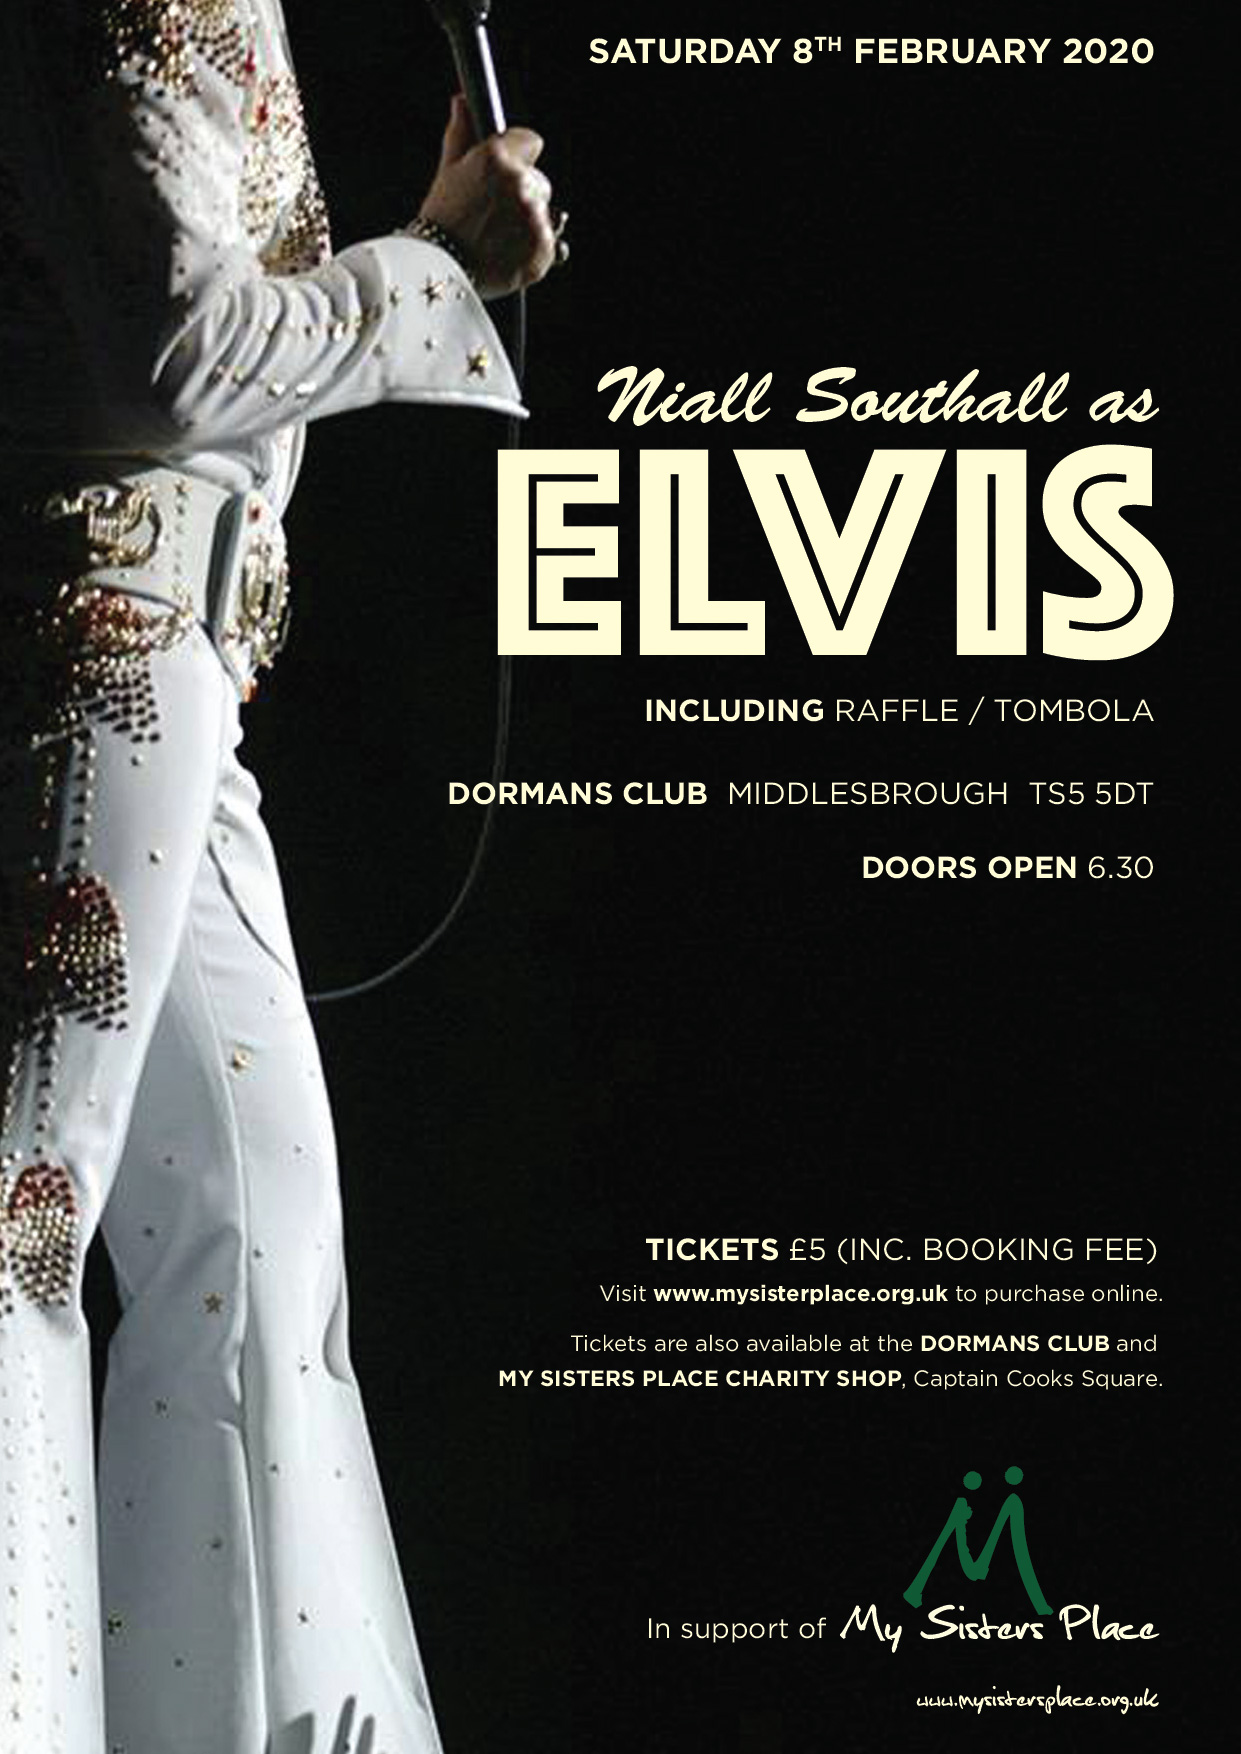 Niall Southall as Elvis